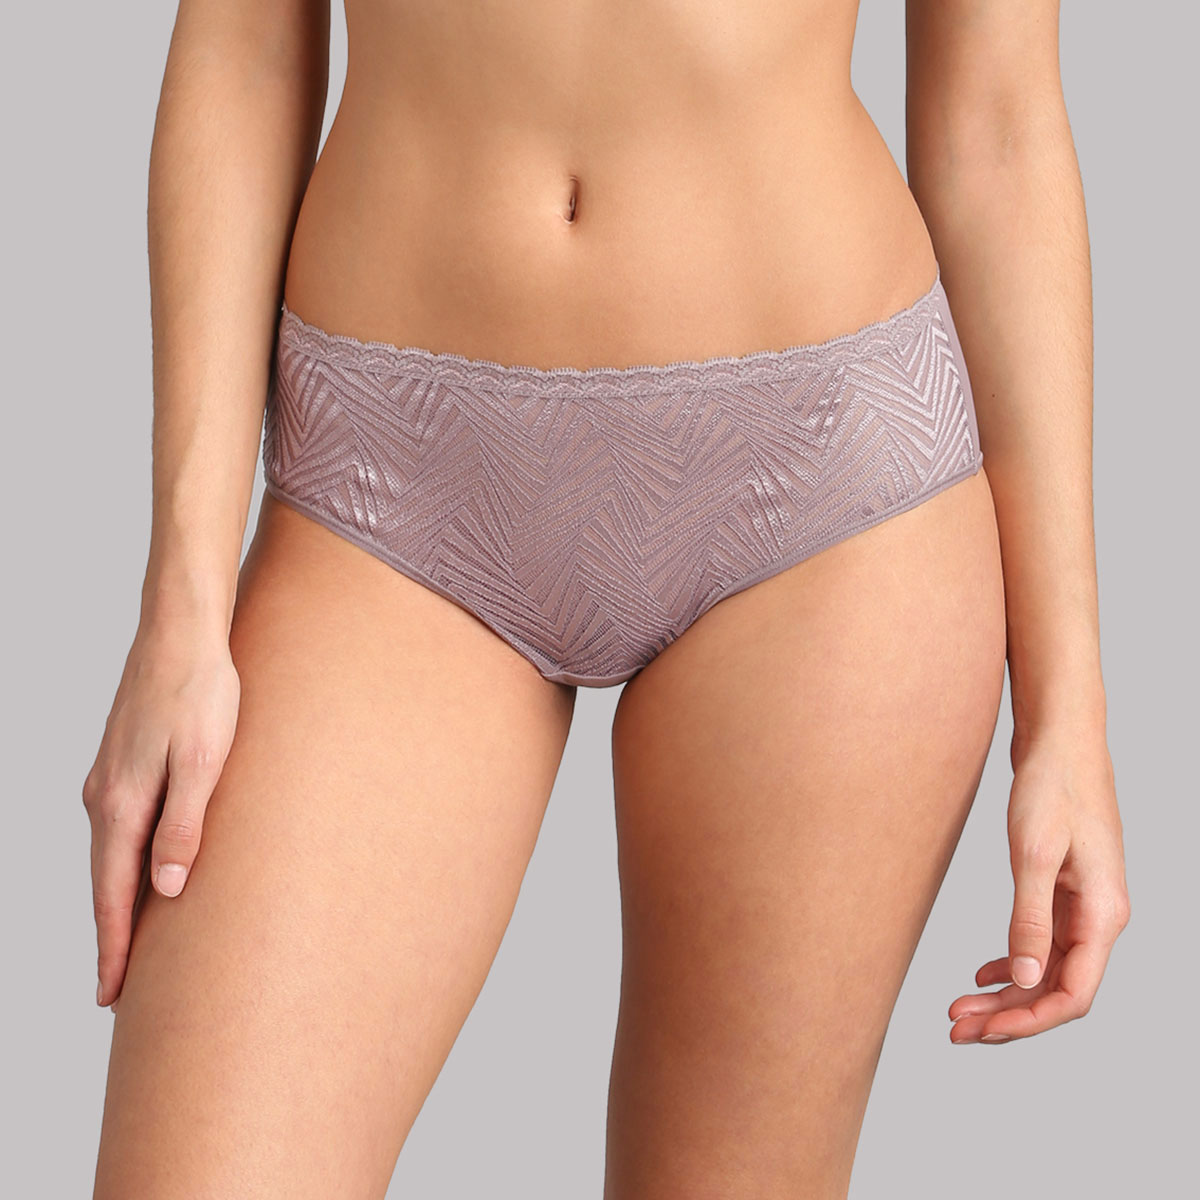 Lace midi knickers in mink - Ideal Posture, , PLAYTEX